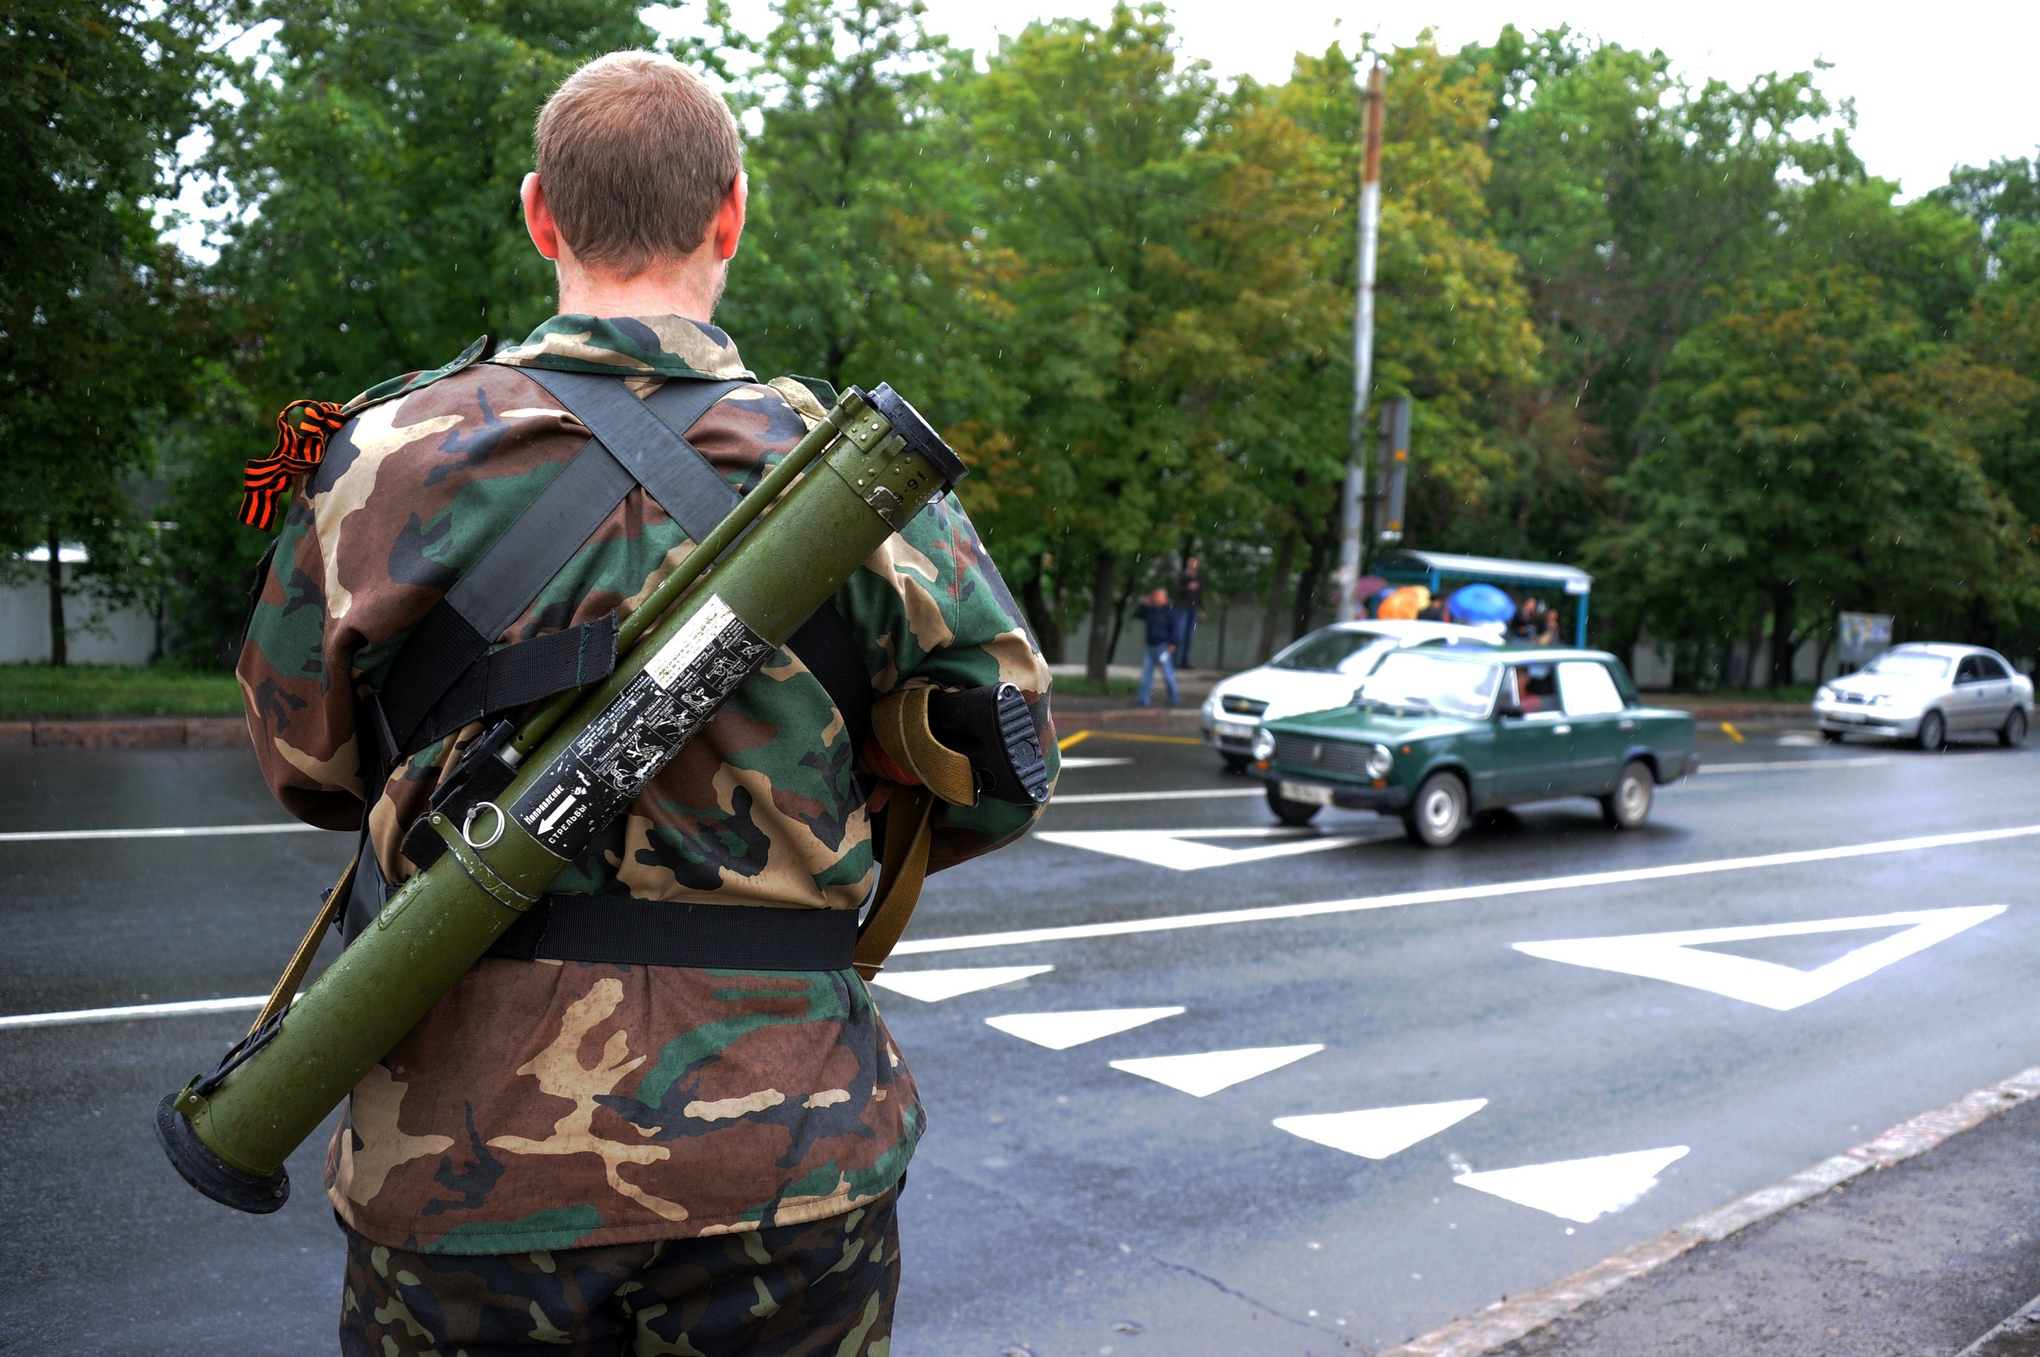 DPR Prepares for Full-Scale War with Pro-Kiev Forces